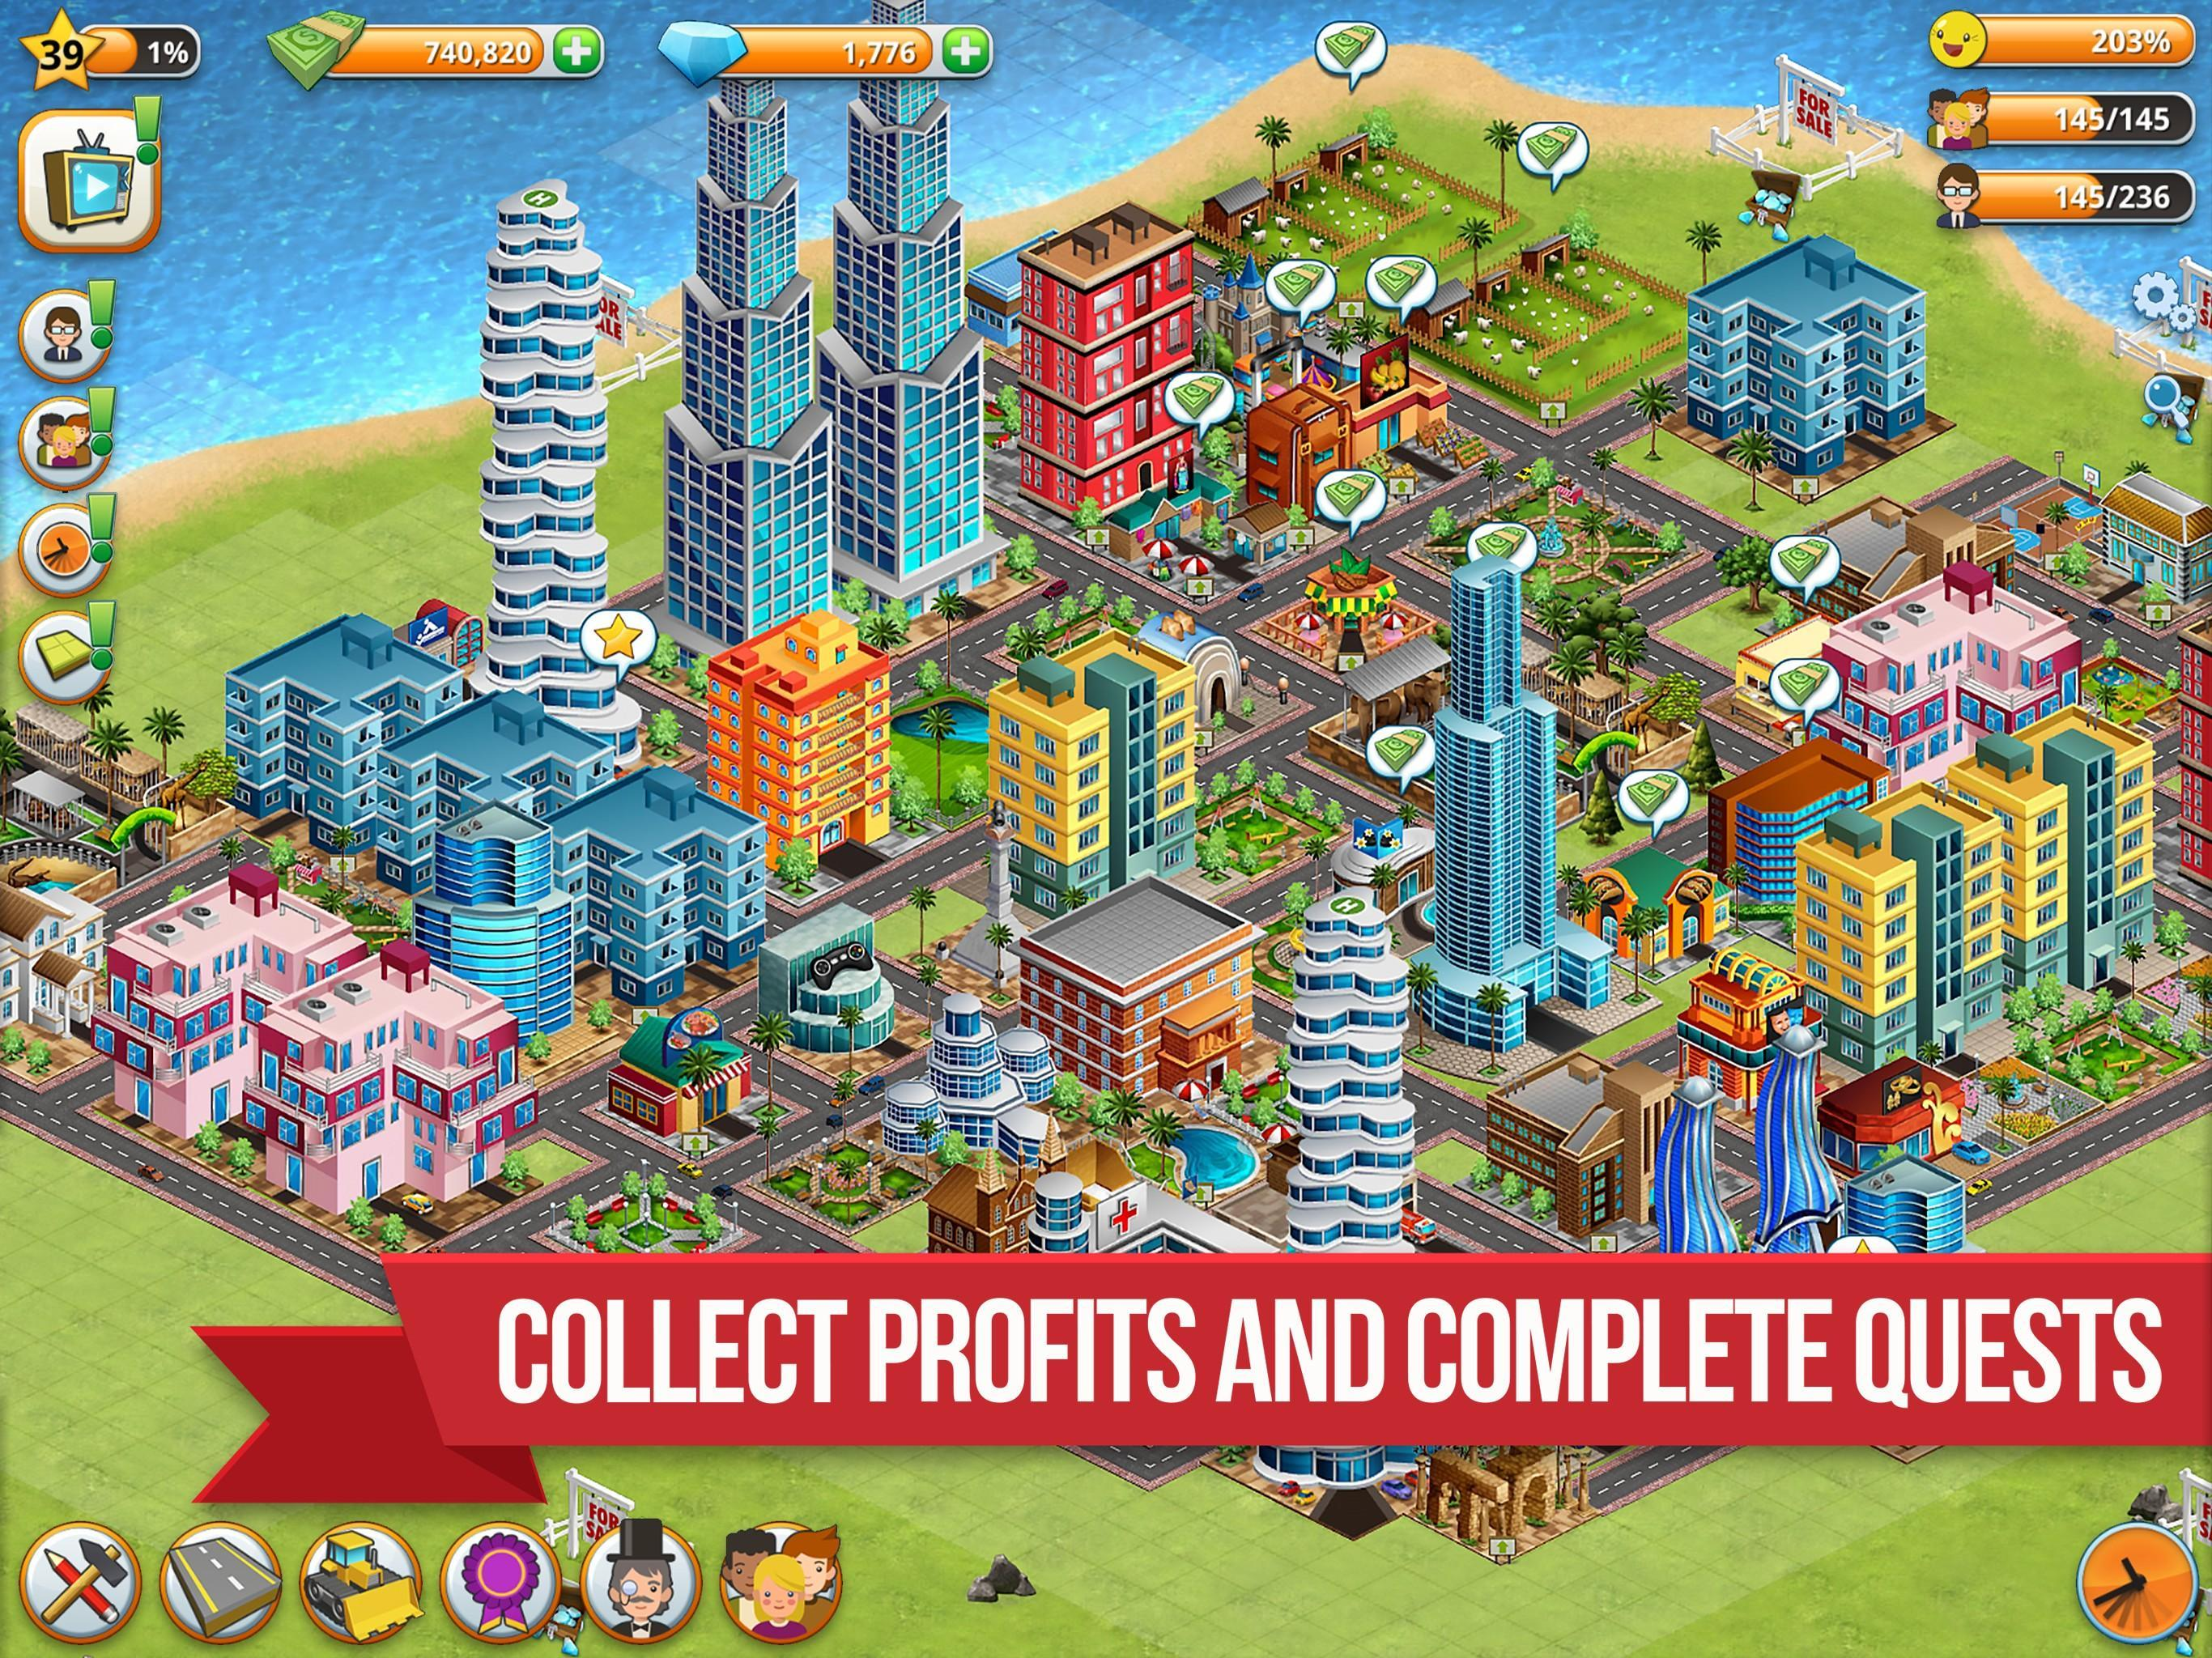 Download permainan download permainan Village City - Island Simulation v1.9.5